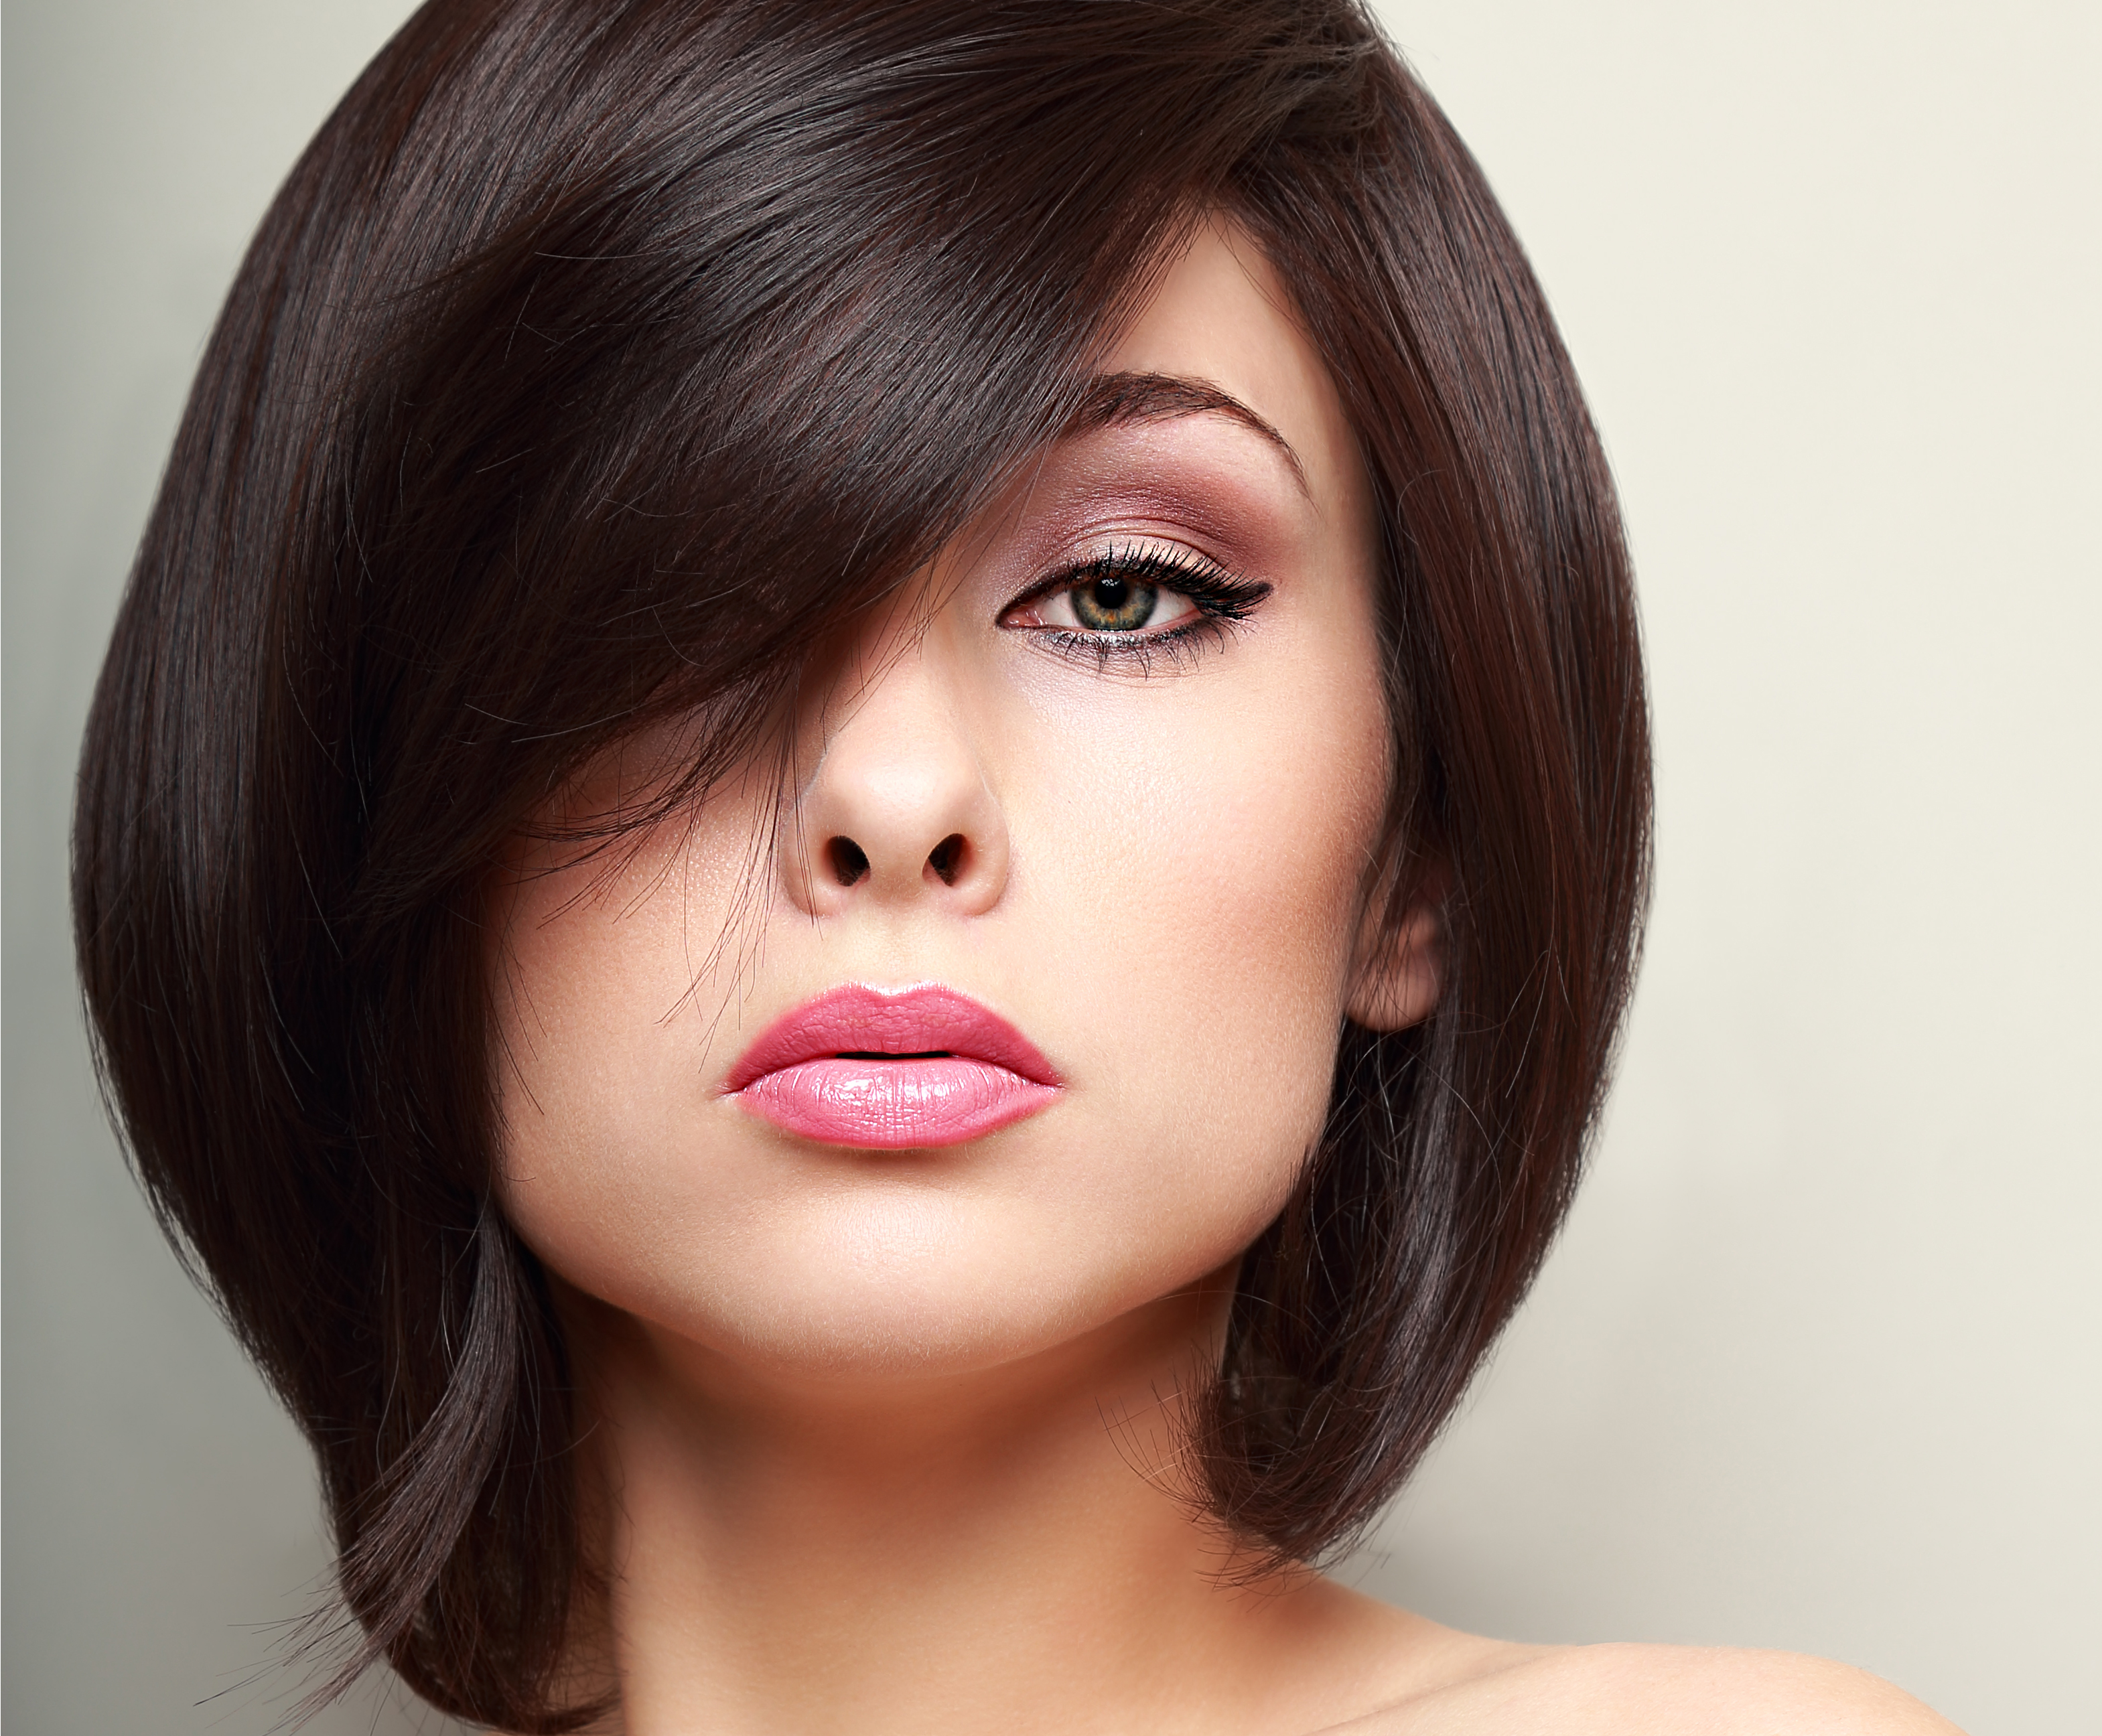 4 Haircuts For A Round Face